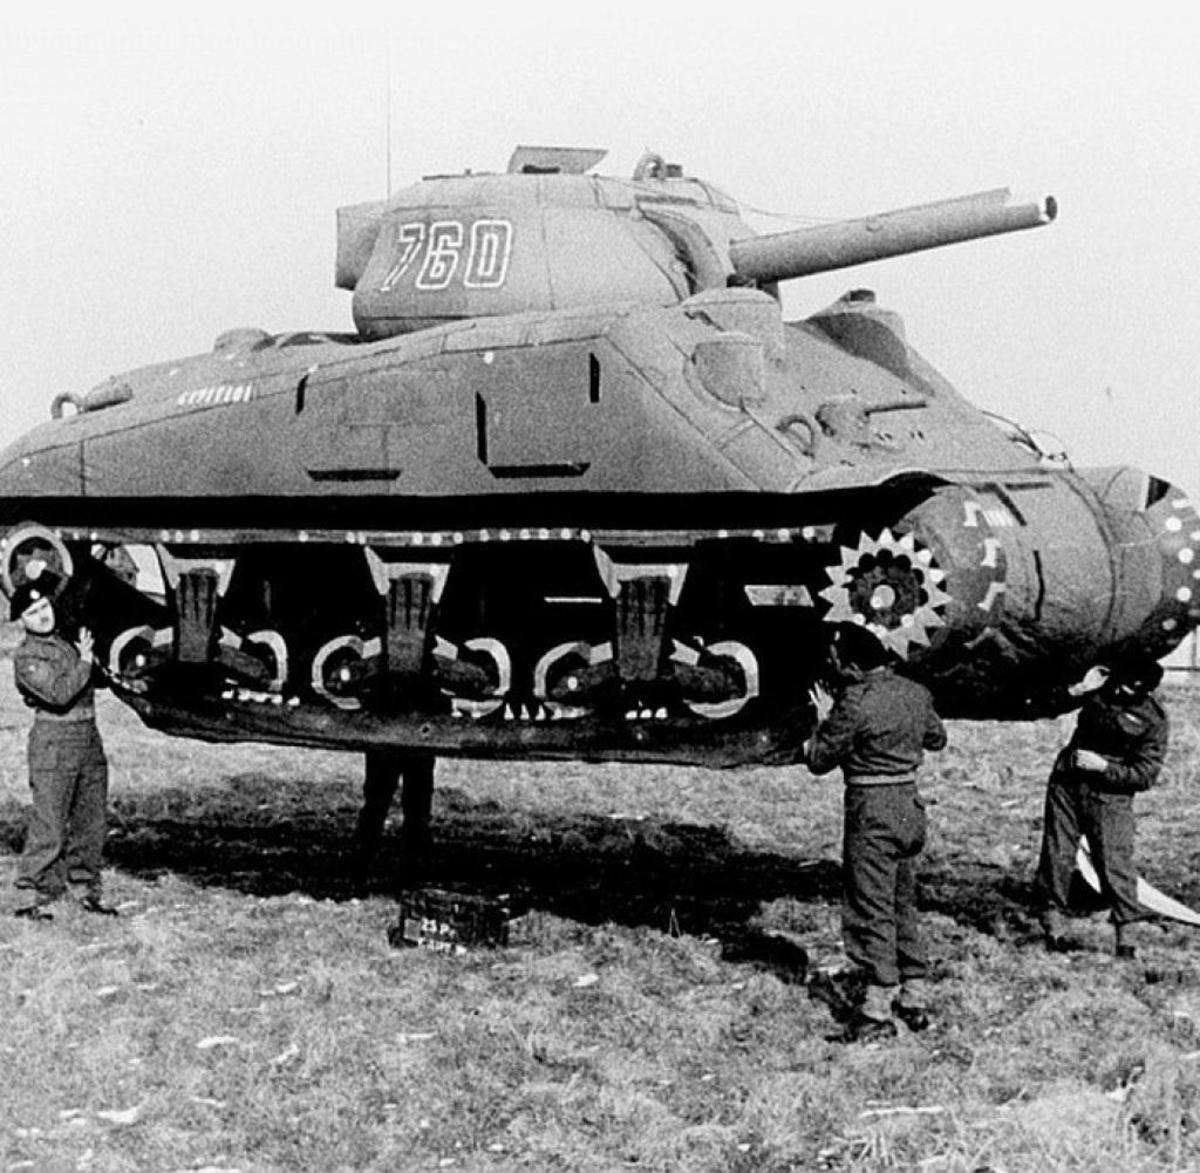 Operation Fortitude was created to confuse Hitler as to were the D-Day landings would take place. Using dummy tanks and landing craft Fortitude would create Allied ghost armies.